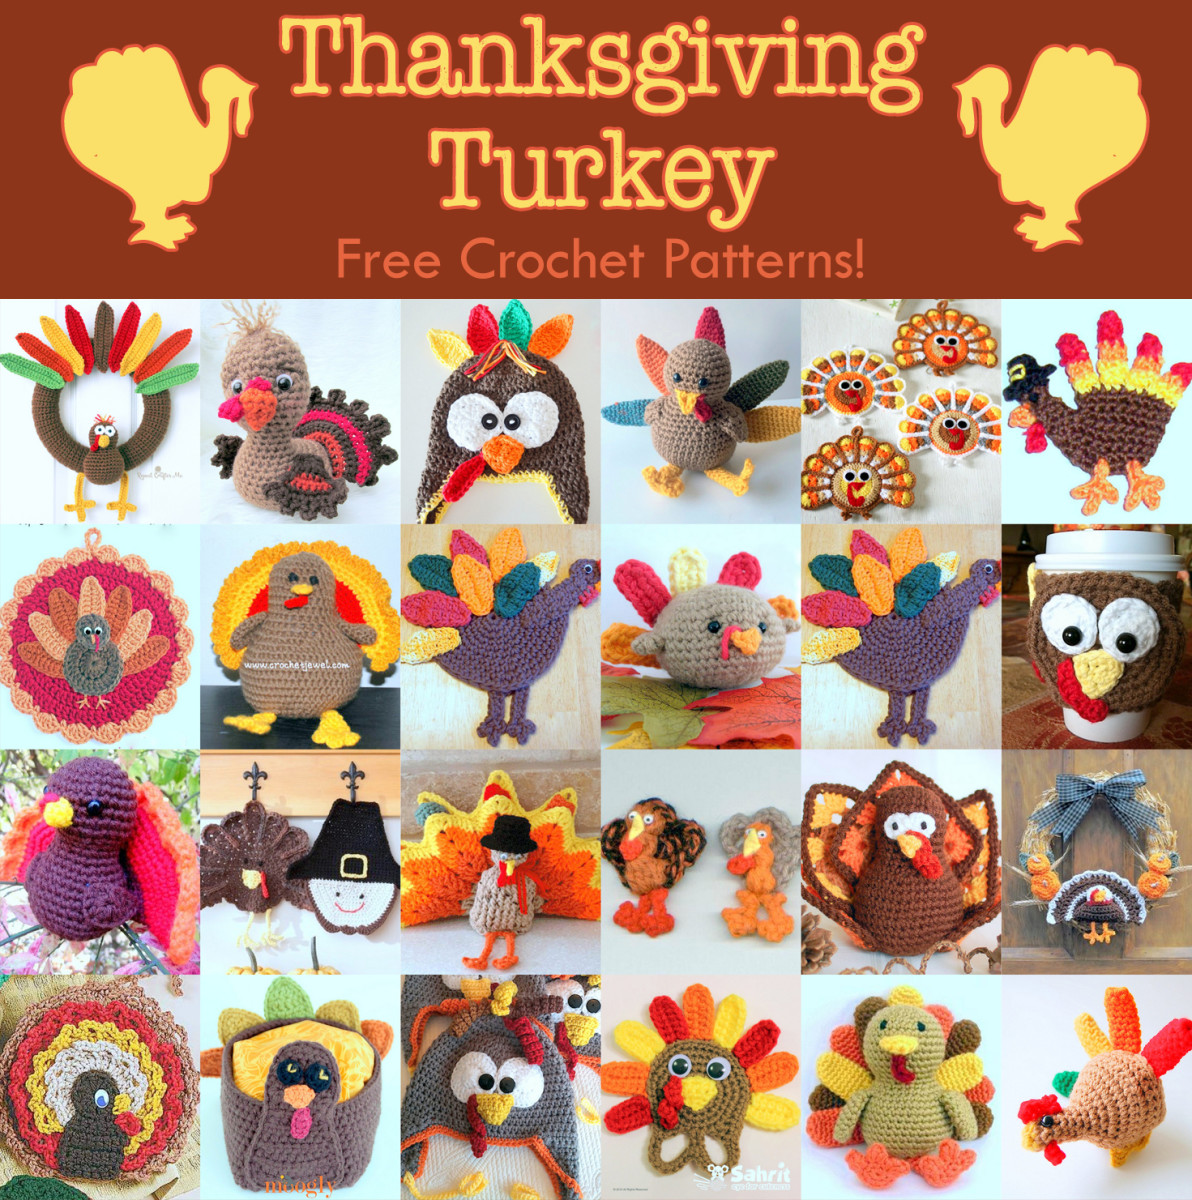 21 Free Thanksgiving Turkey Crochet Patterns